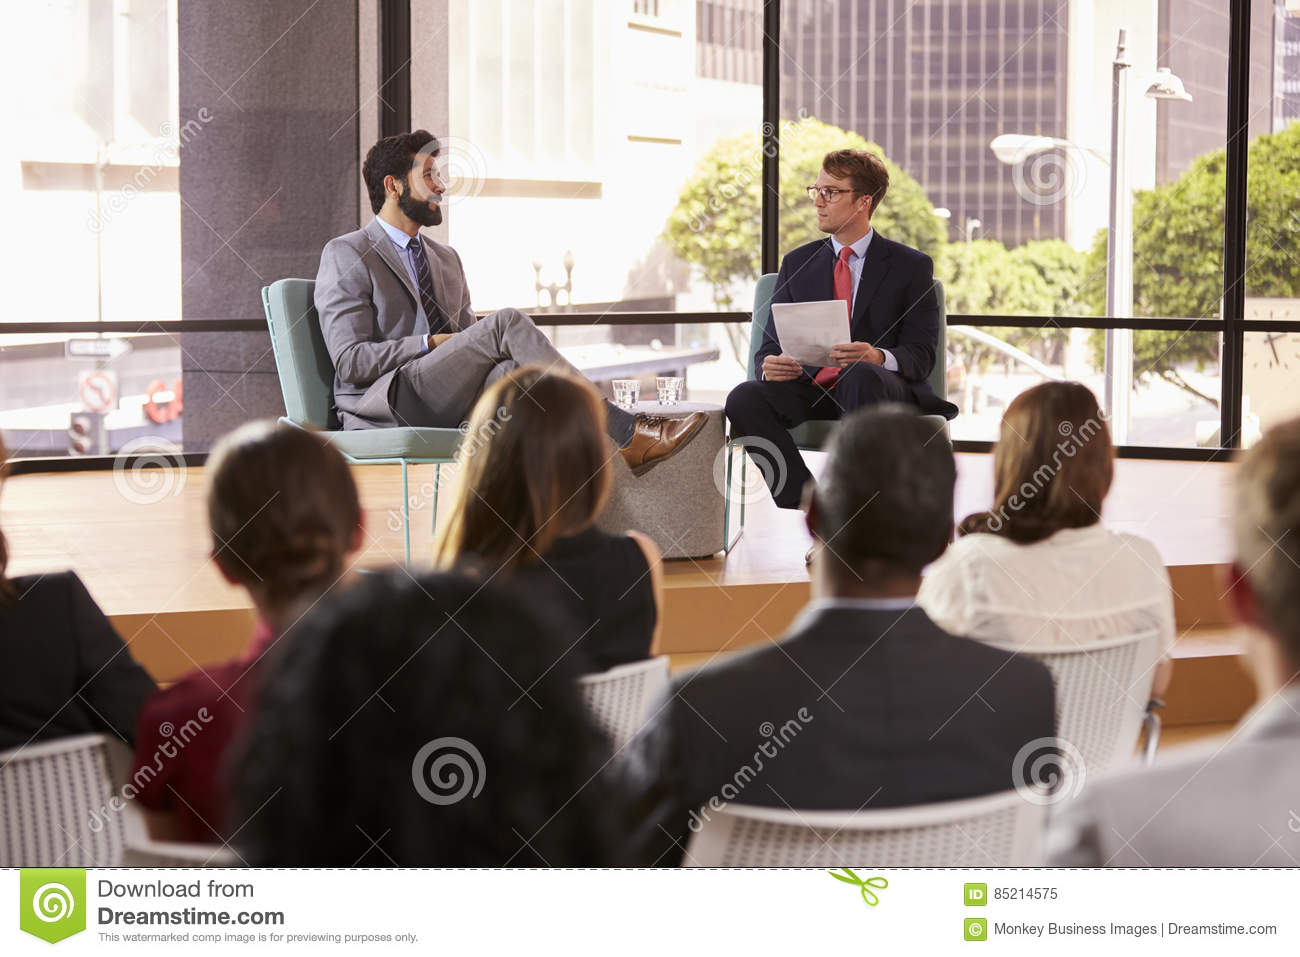 Speaker and interviewer in front of audience at a seminar